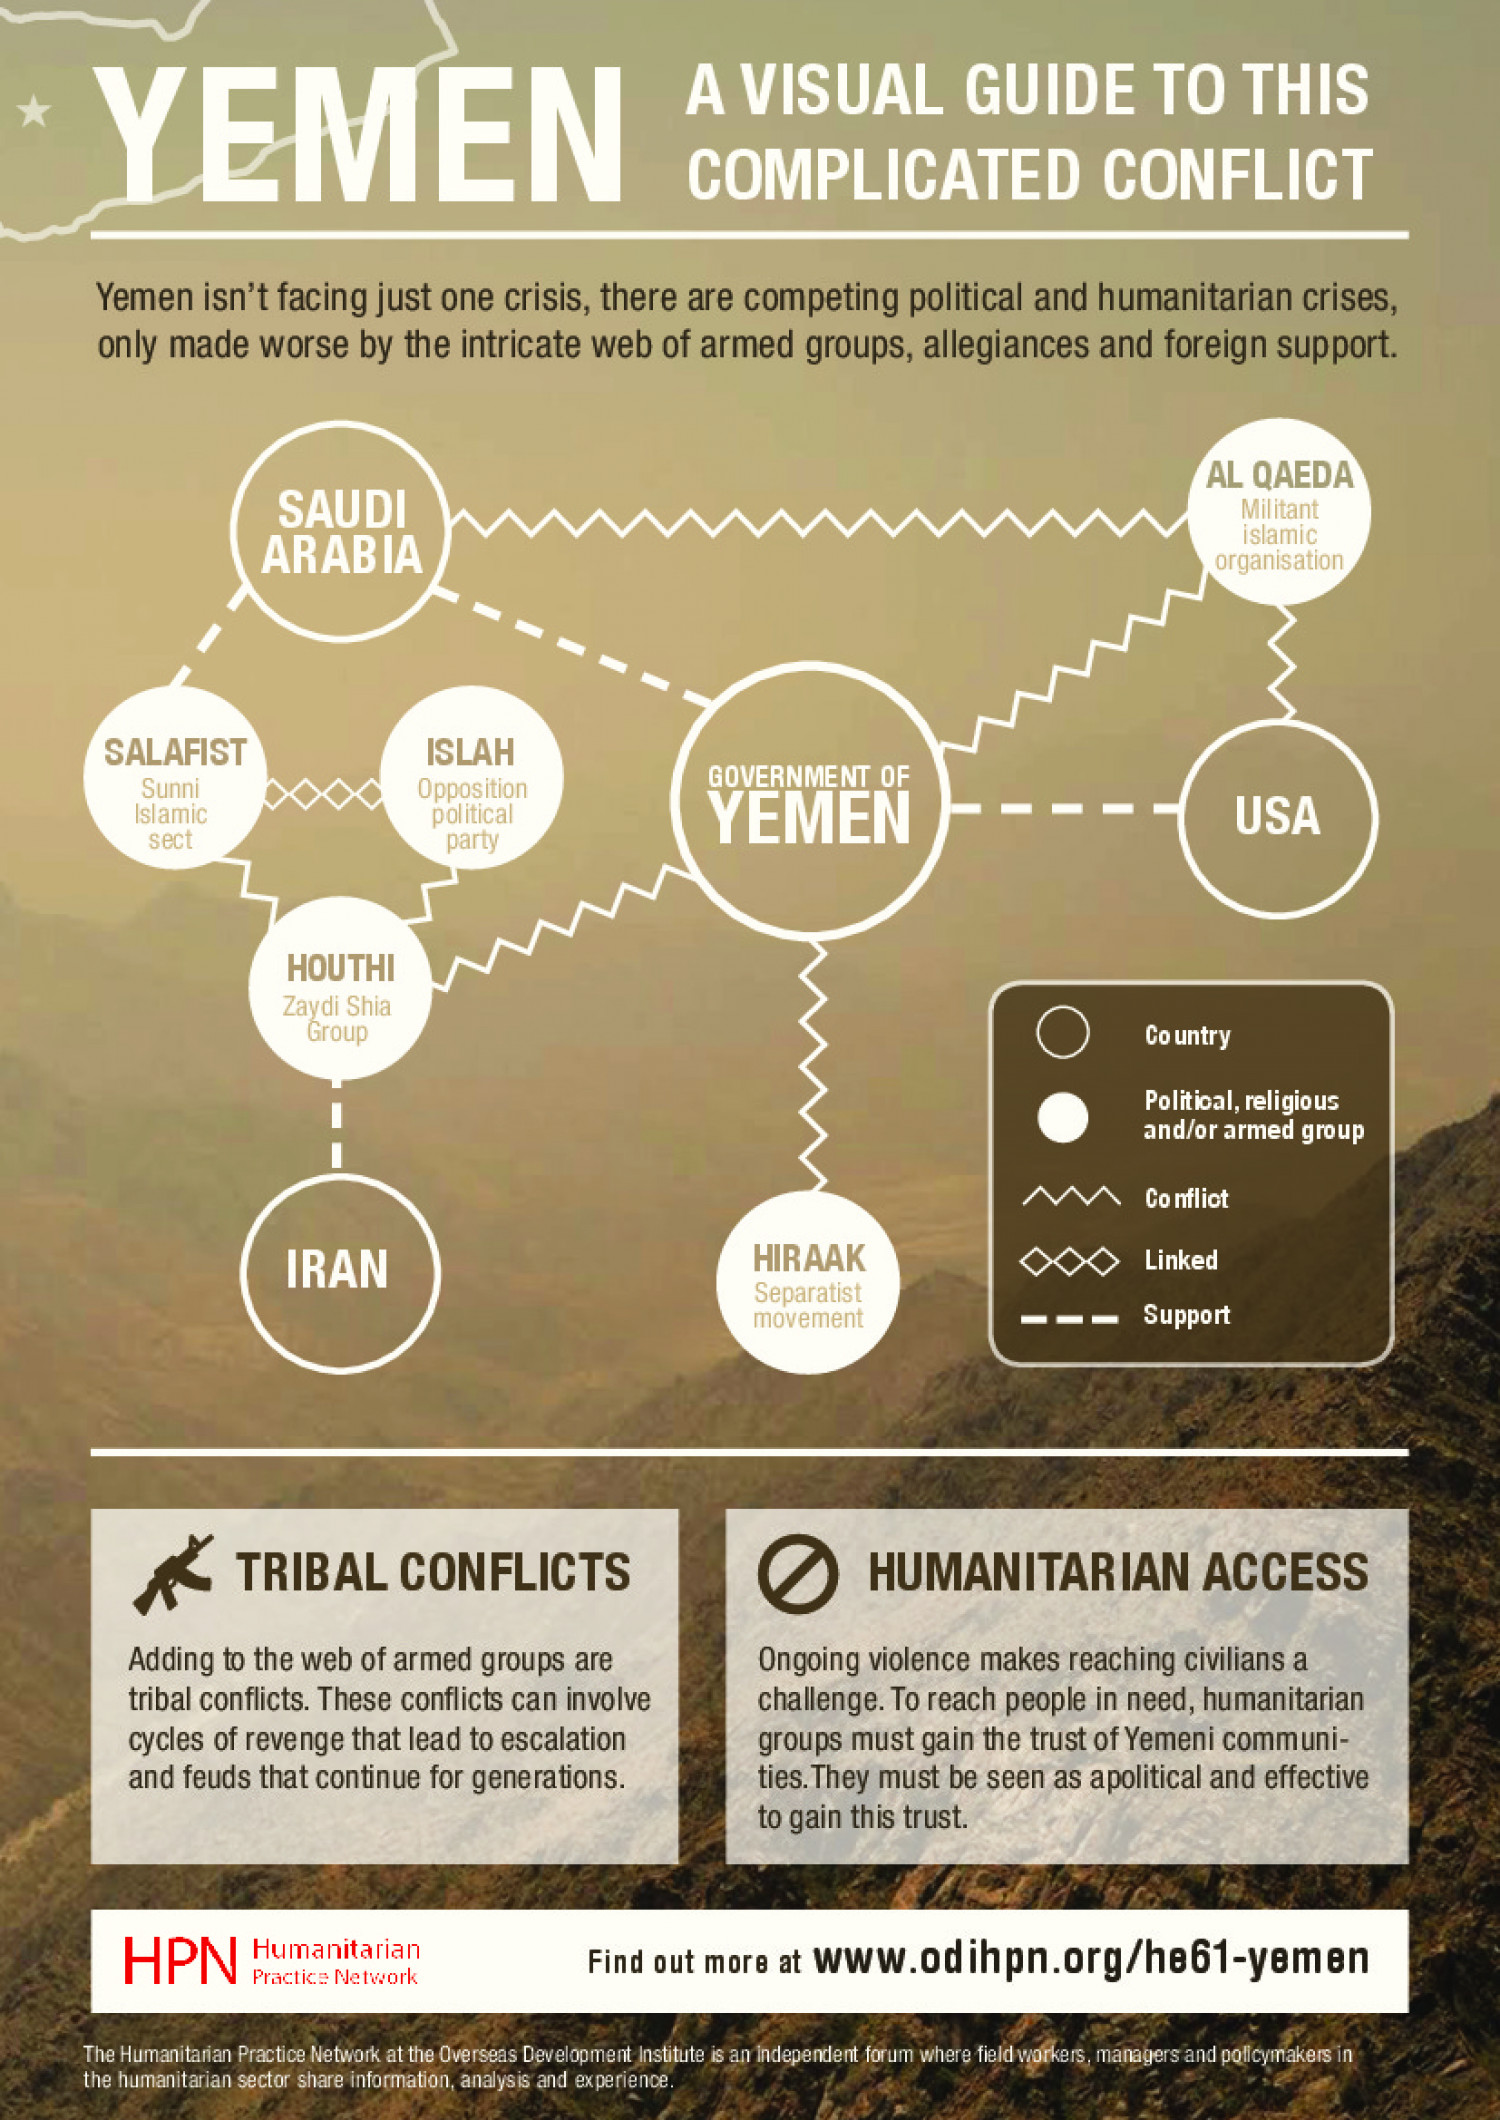 Yemen: A Visual Guide to This Complicated Conflict Infographic